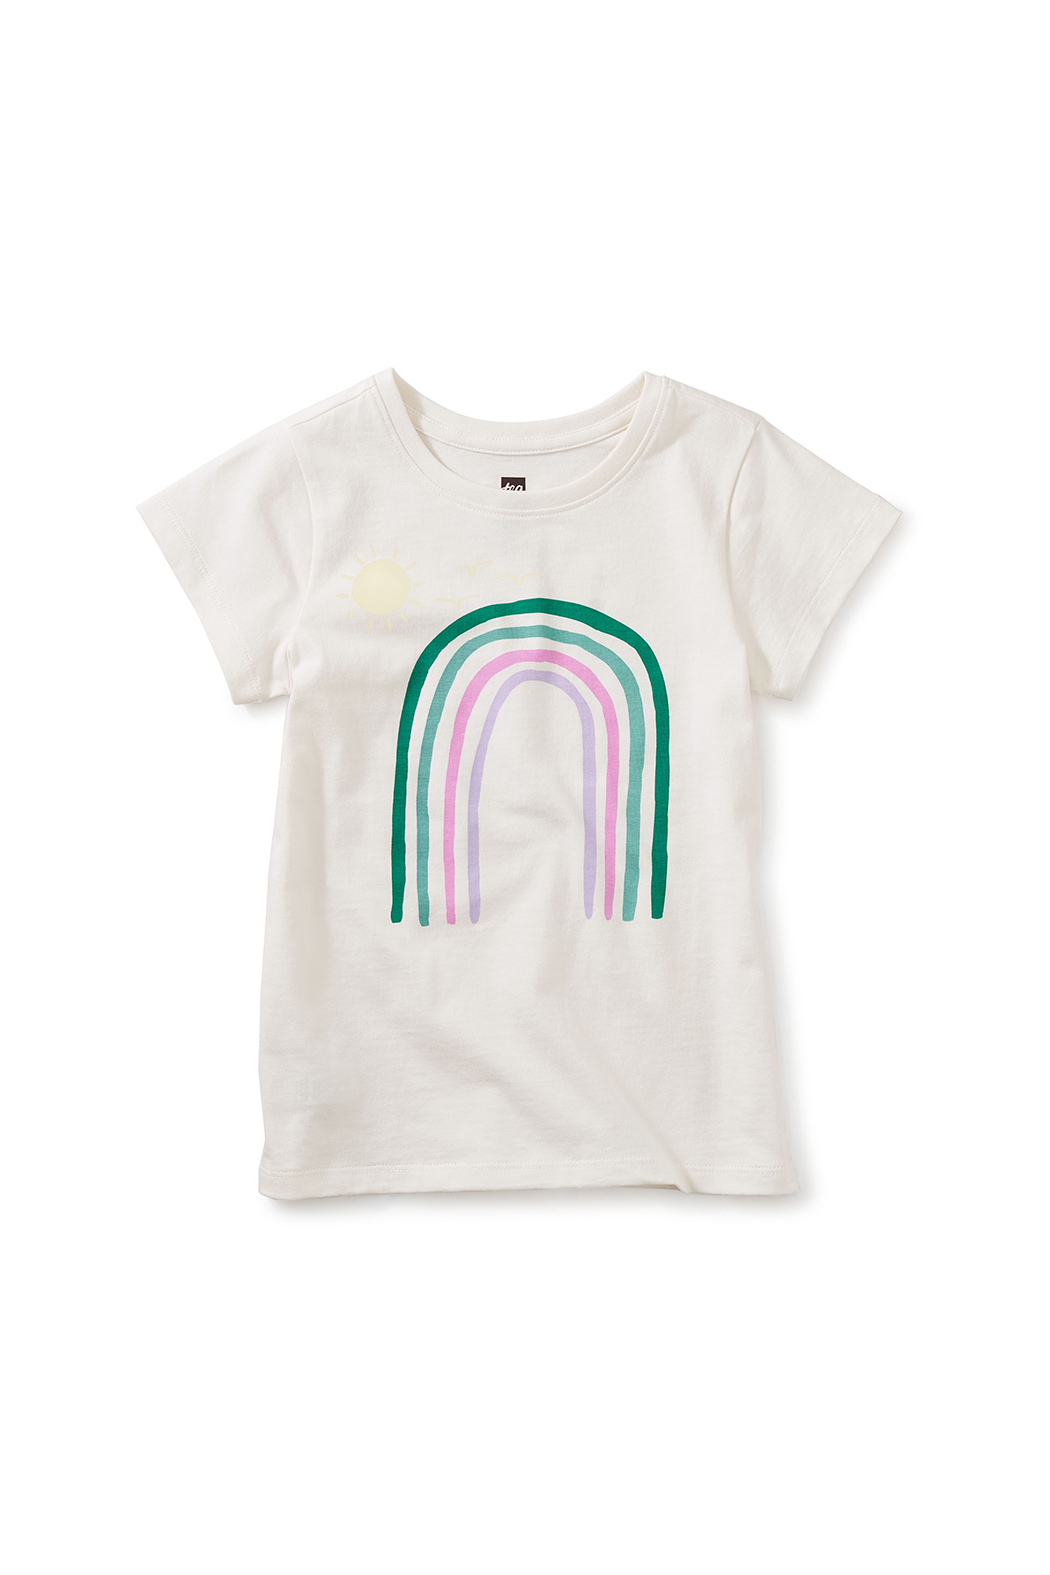 Tea Collection  True Colors UV Graphic Tee - Main Image